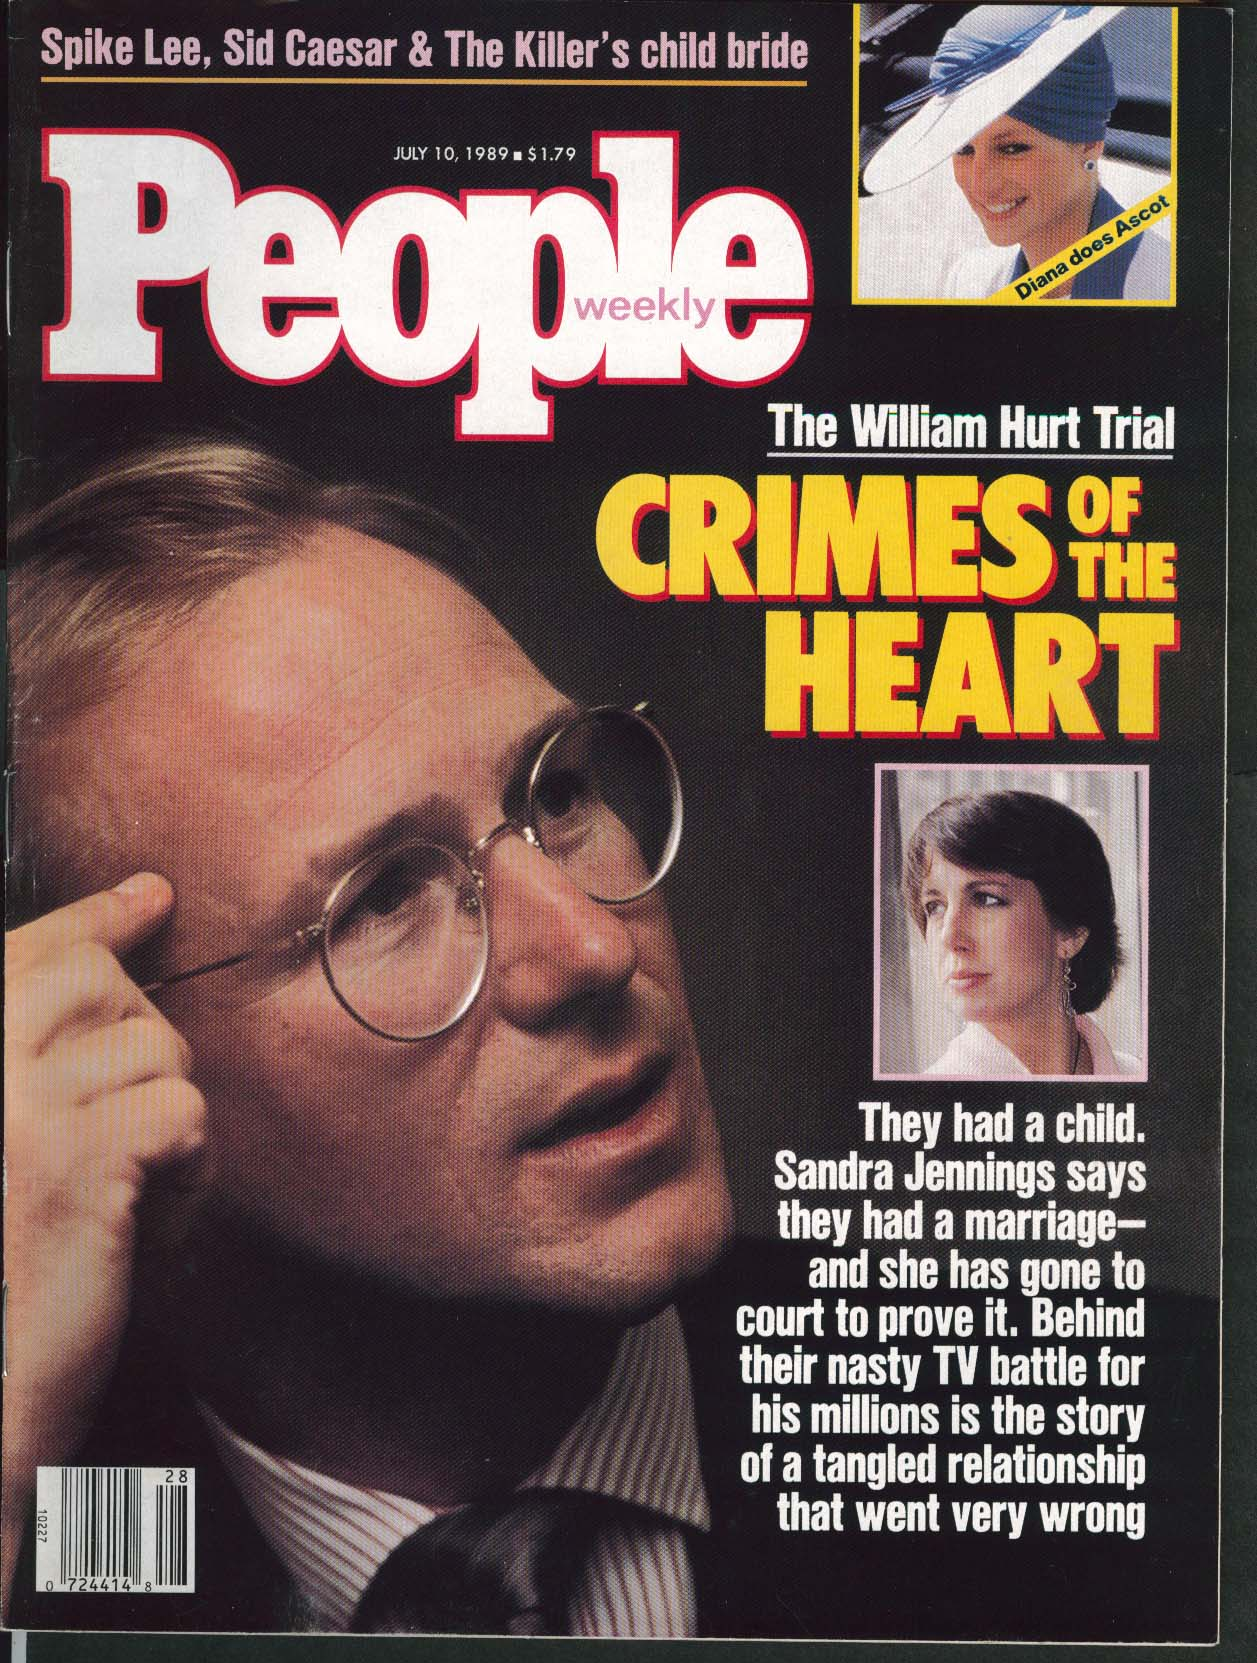 PEOPLE William Hurt Sandra Jennings Spike Lee 7/10 1989